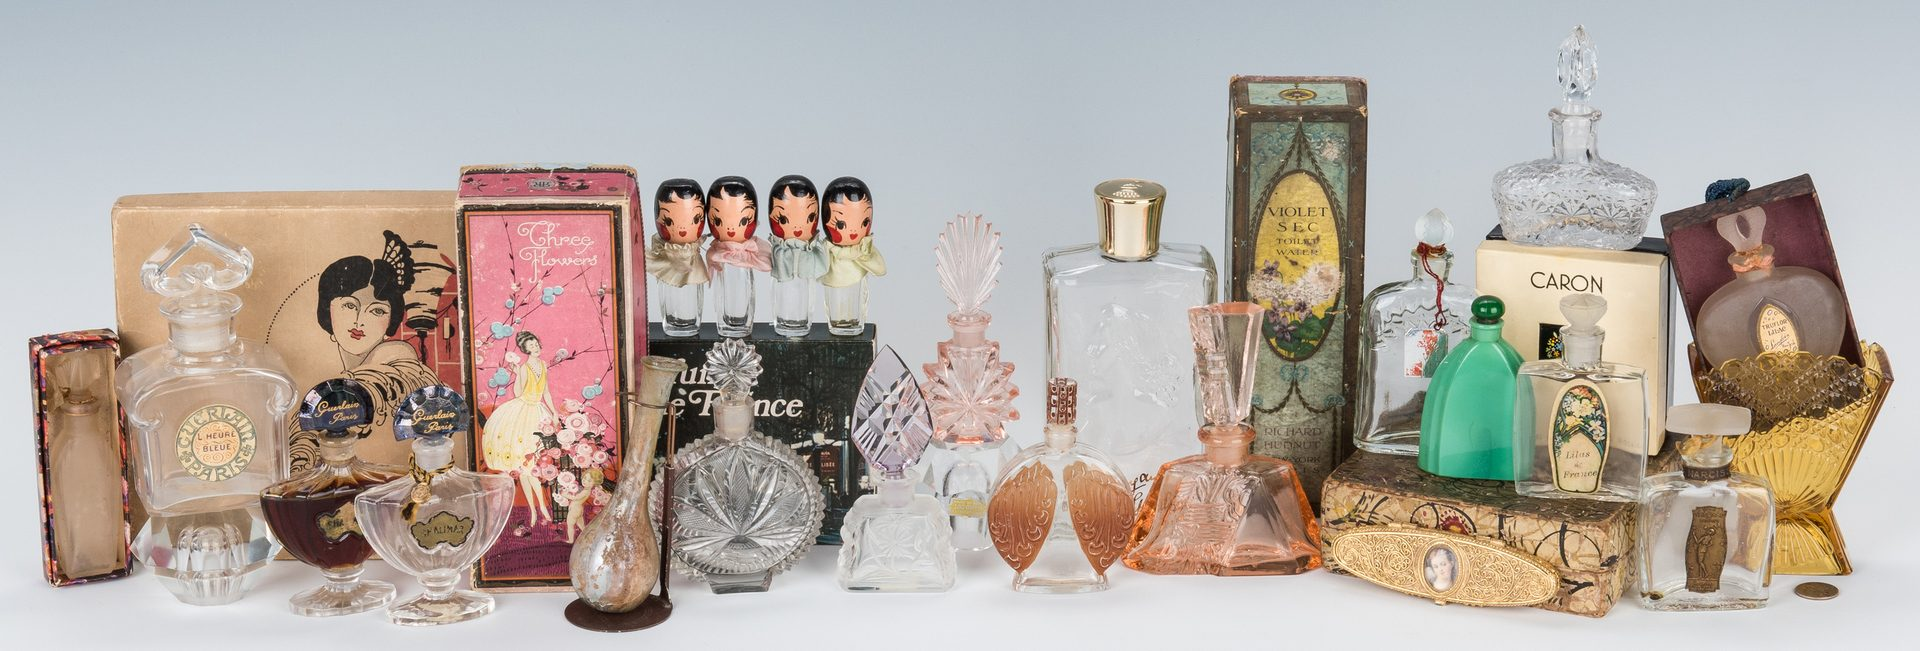 Lot 435: 28 Perfume Package Sets and Bottles